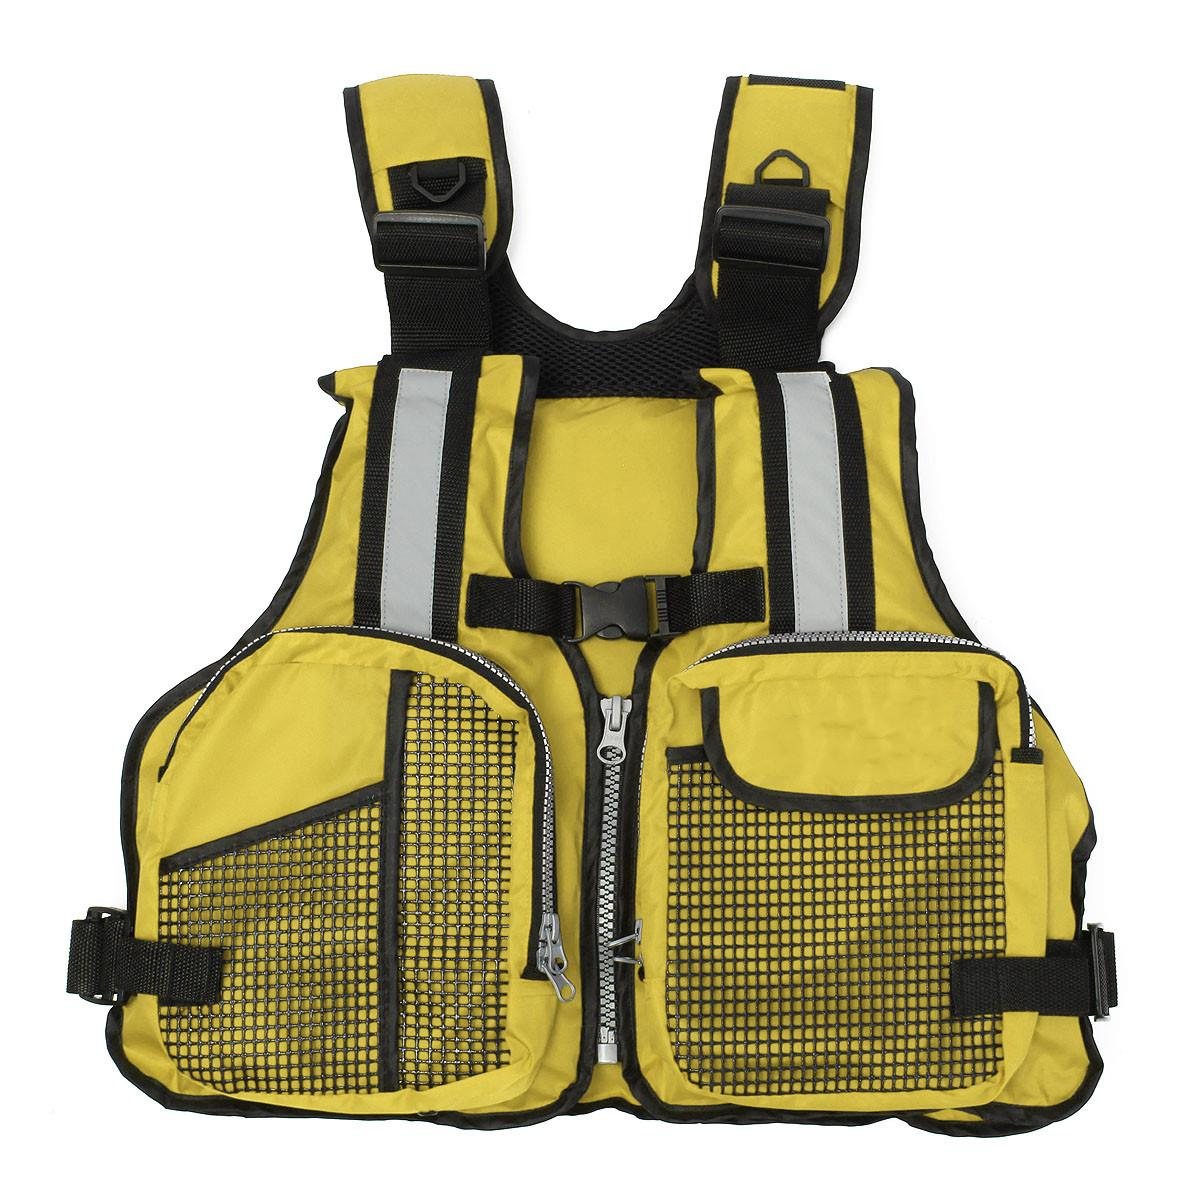 Adjustable 3 Colors Fly Fishing Vest Outdoor Waterpoor Safety Life Jacket Life Vest Fishing Clothes In Water Sports Swim(China (Mainland))